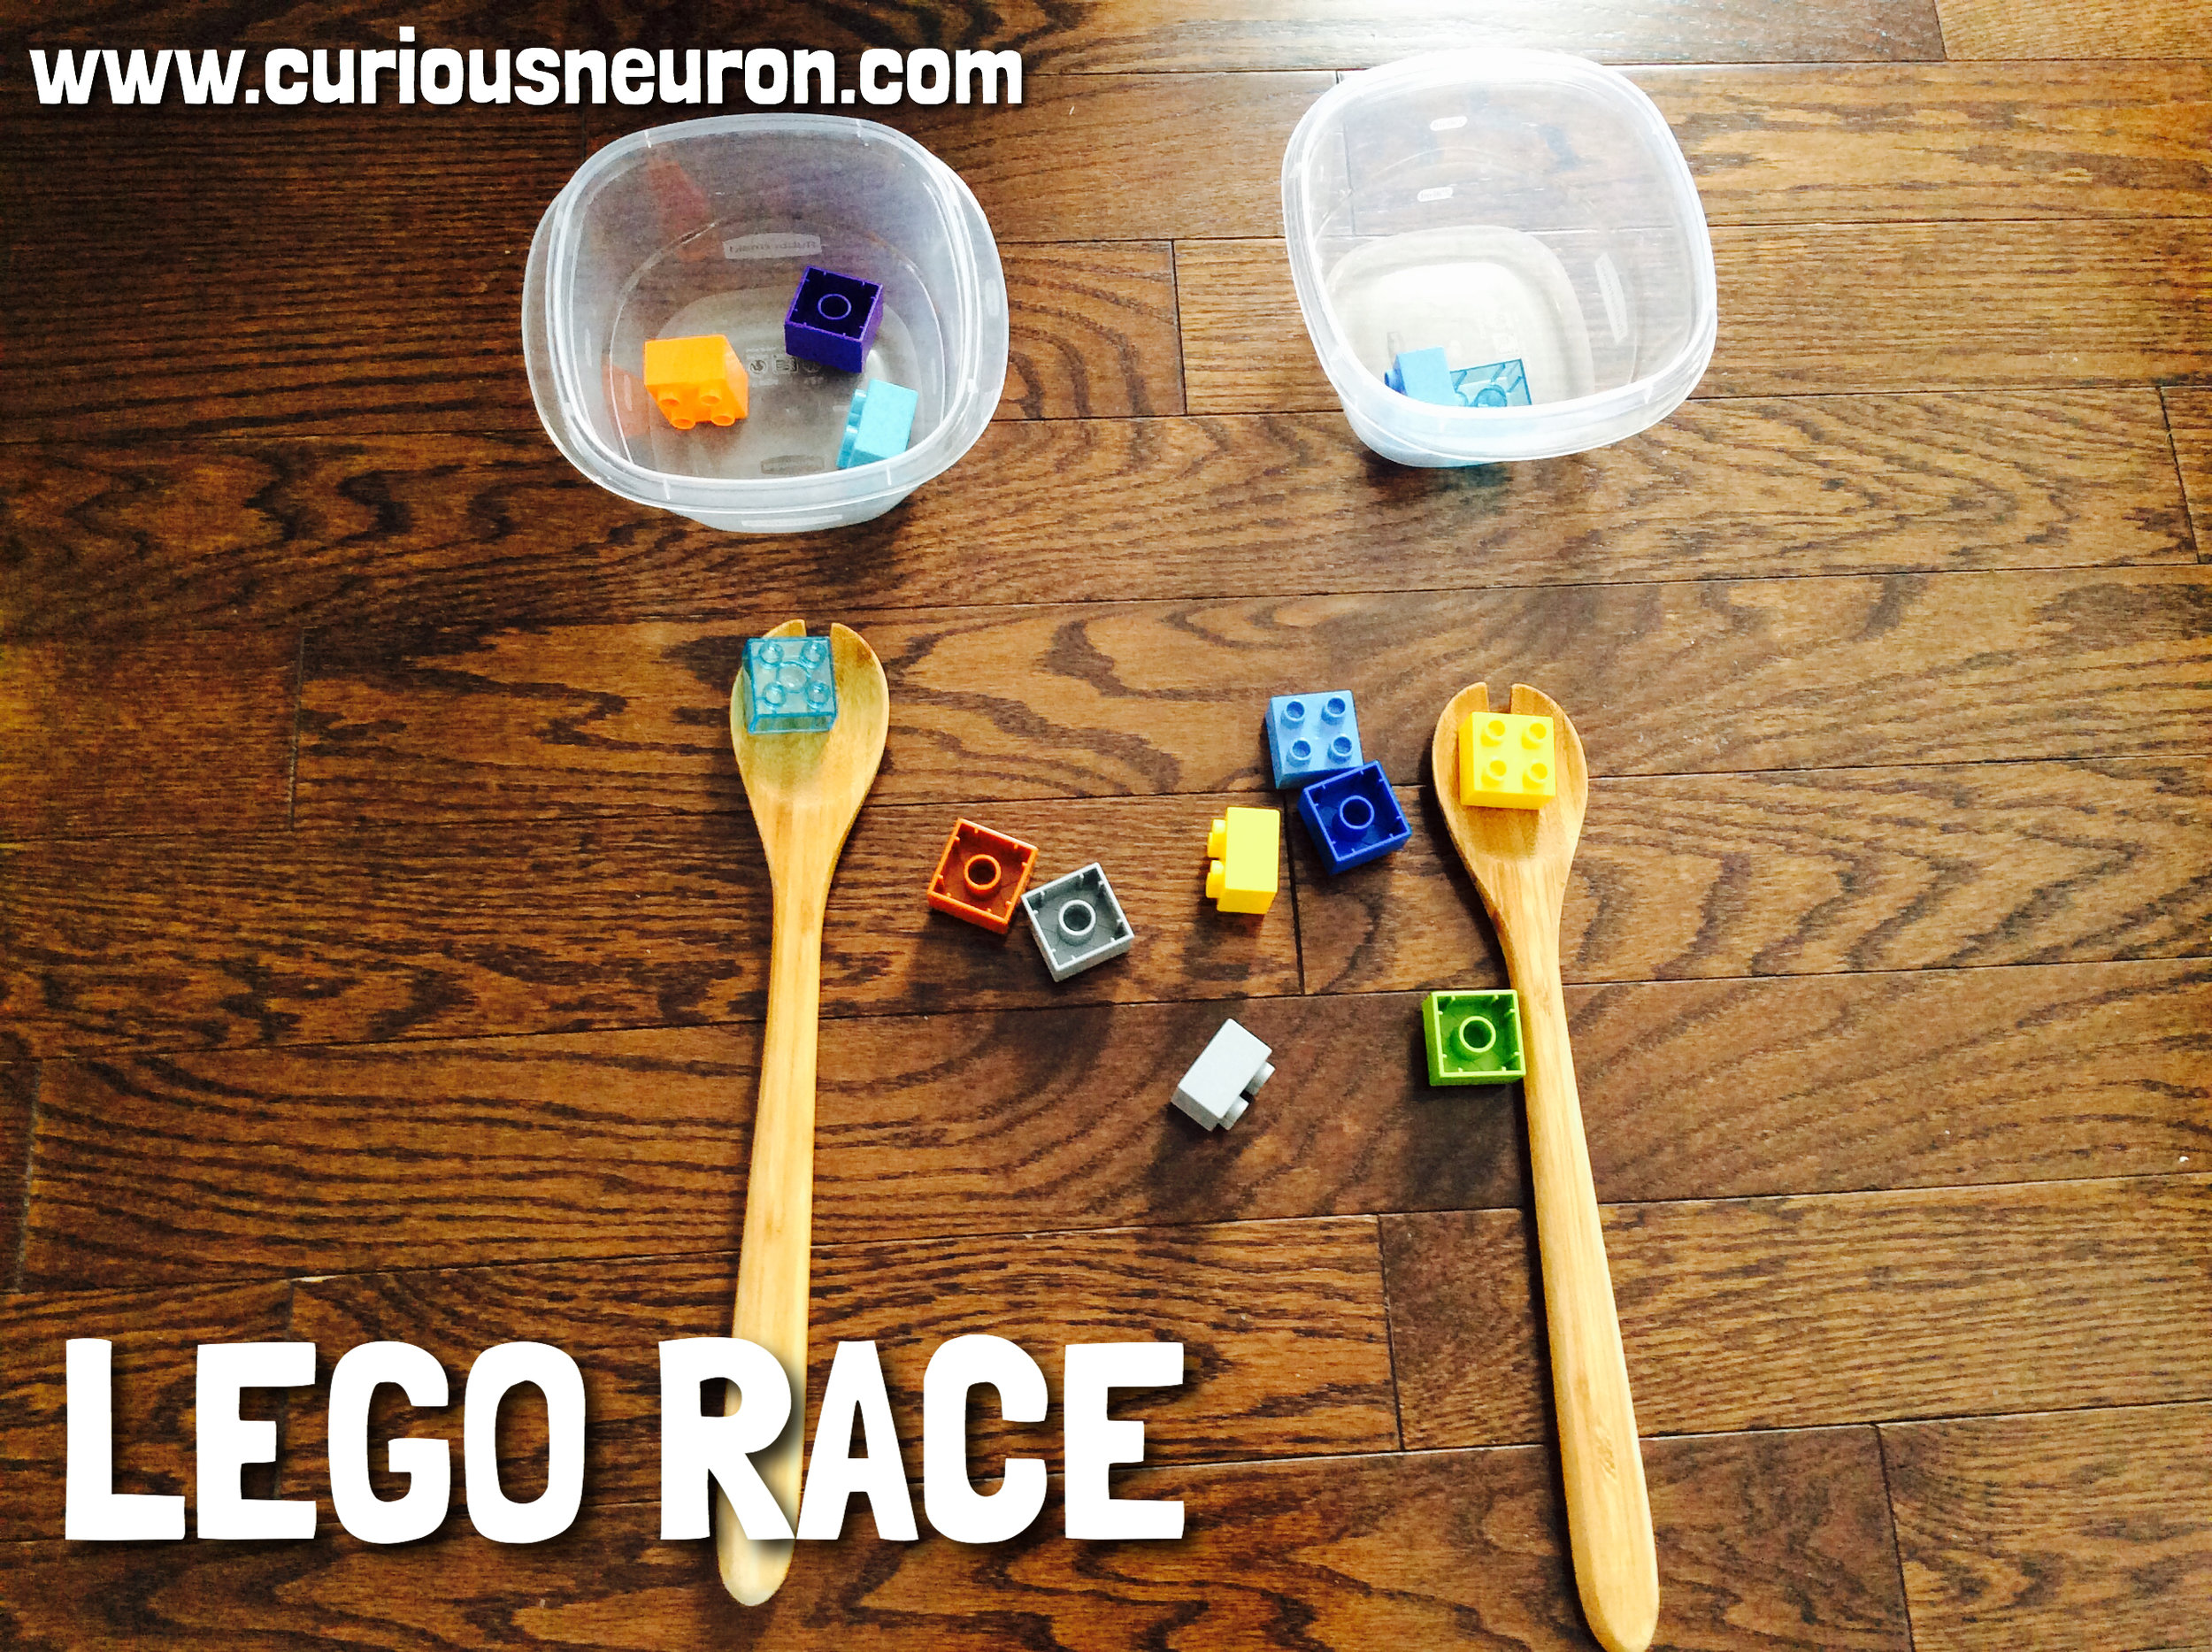 Add 2 containers at one end of the room and use spoons to carry your lego across the room. Don't drop it! If you do, you need to start from the beginning. You can vary this activity depending on your child's age. For instance, walking backwards, hop on one foot etc. With my toddler, we have to either jump or clamp before picking up a new Lego. Adding 1-3 rules helps build  executive functions .